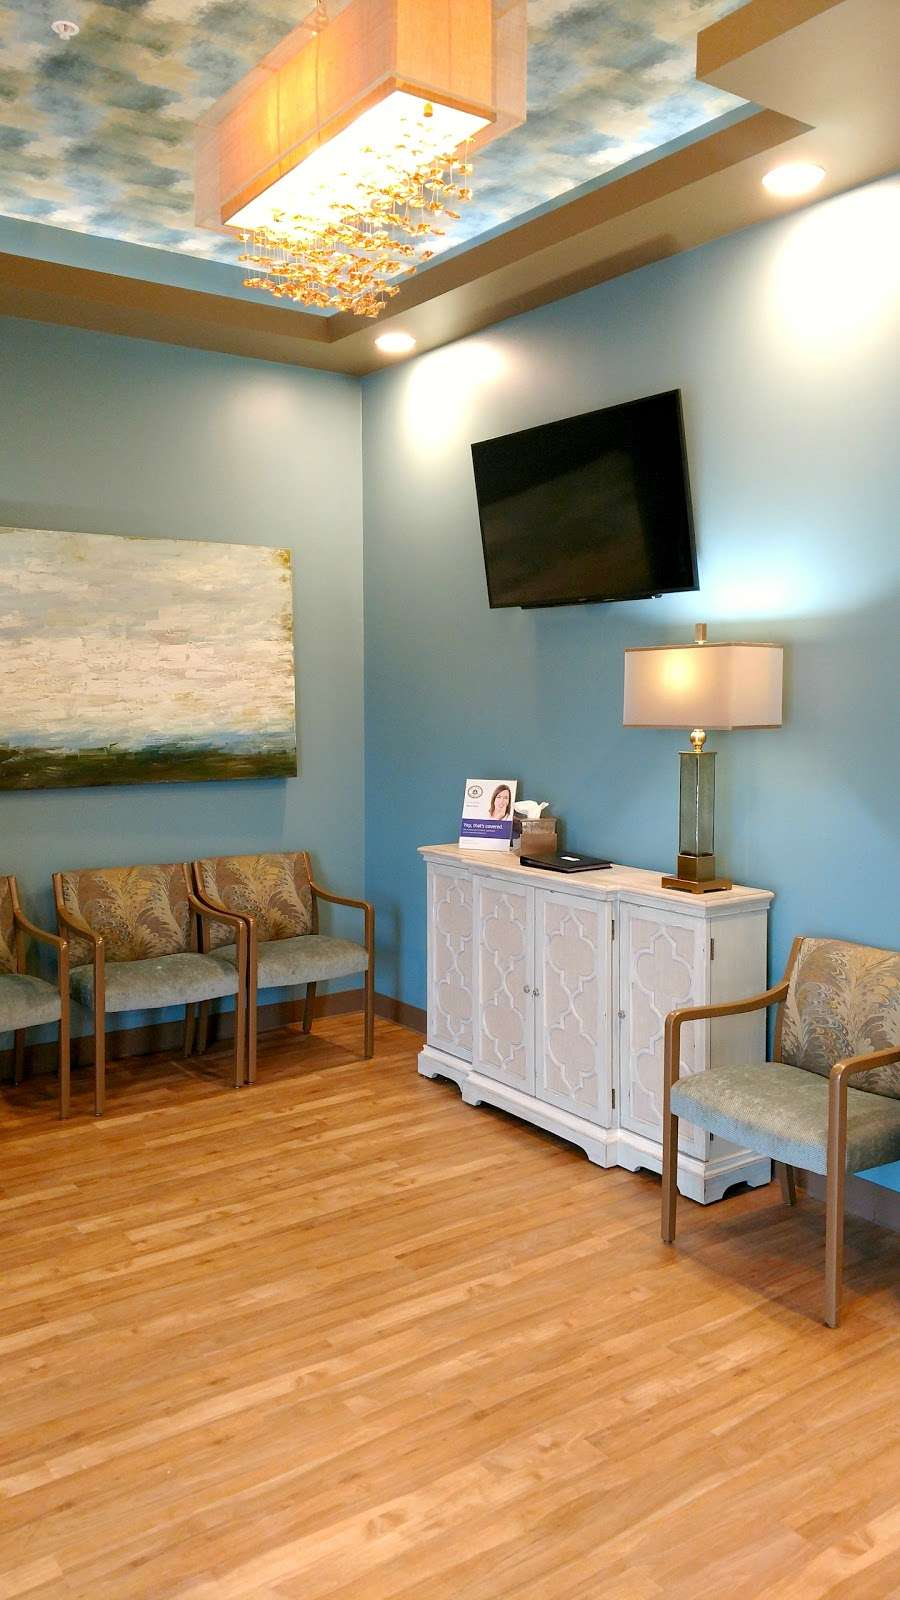 Patient-First Dental Care - dentist  | Photo 2 of 10 | Address: 1336 League Line Rd #400, Conroe, TX 77304, USA | Phone: (936) 856-9969